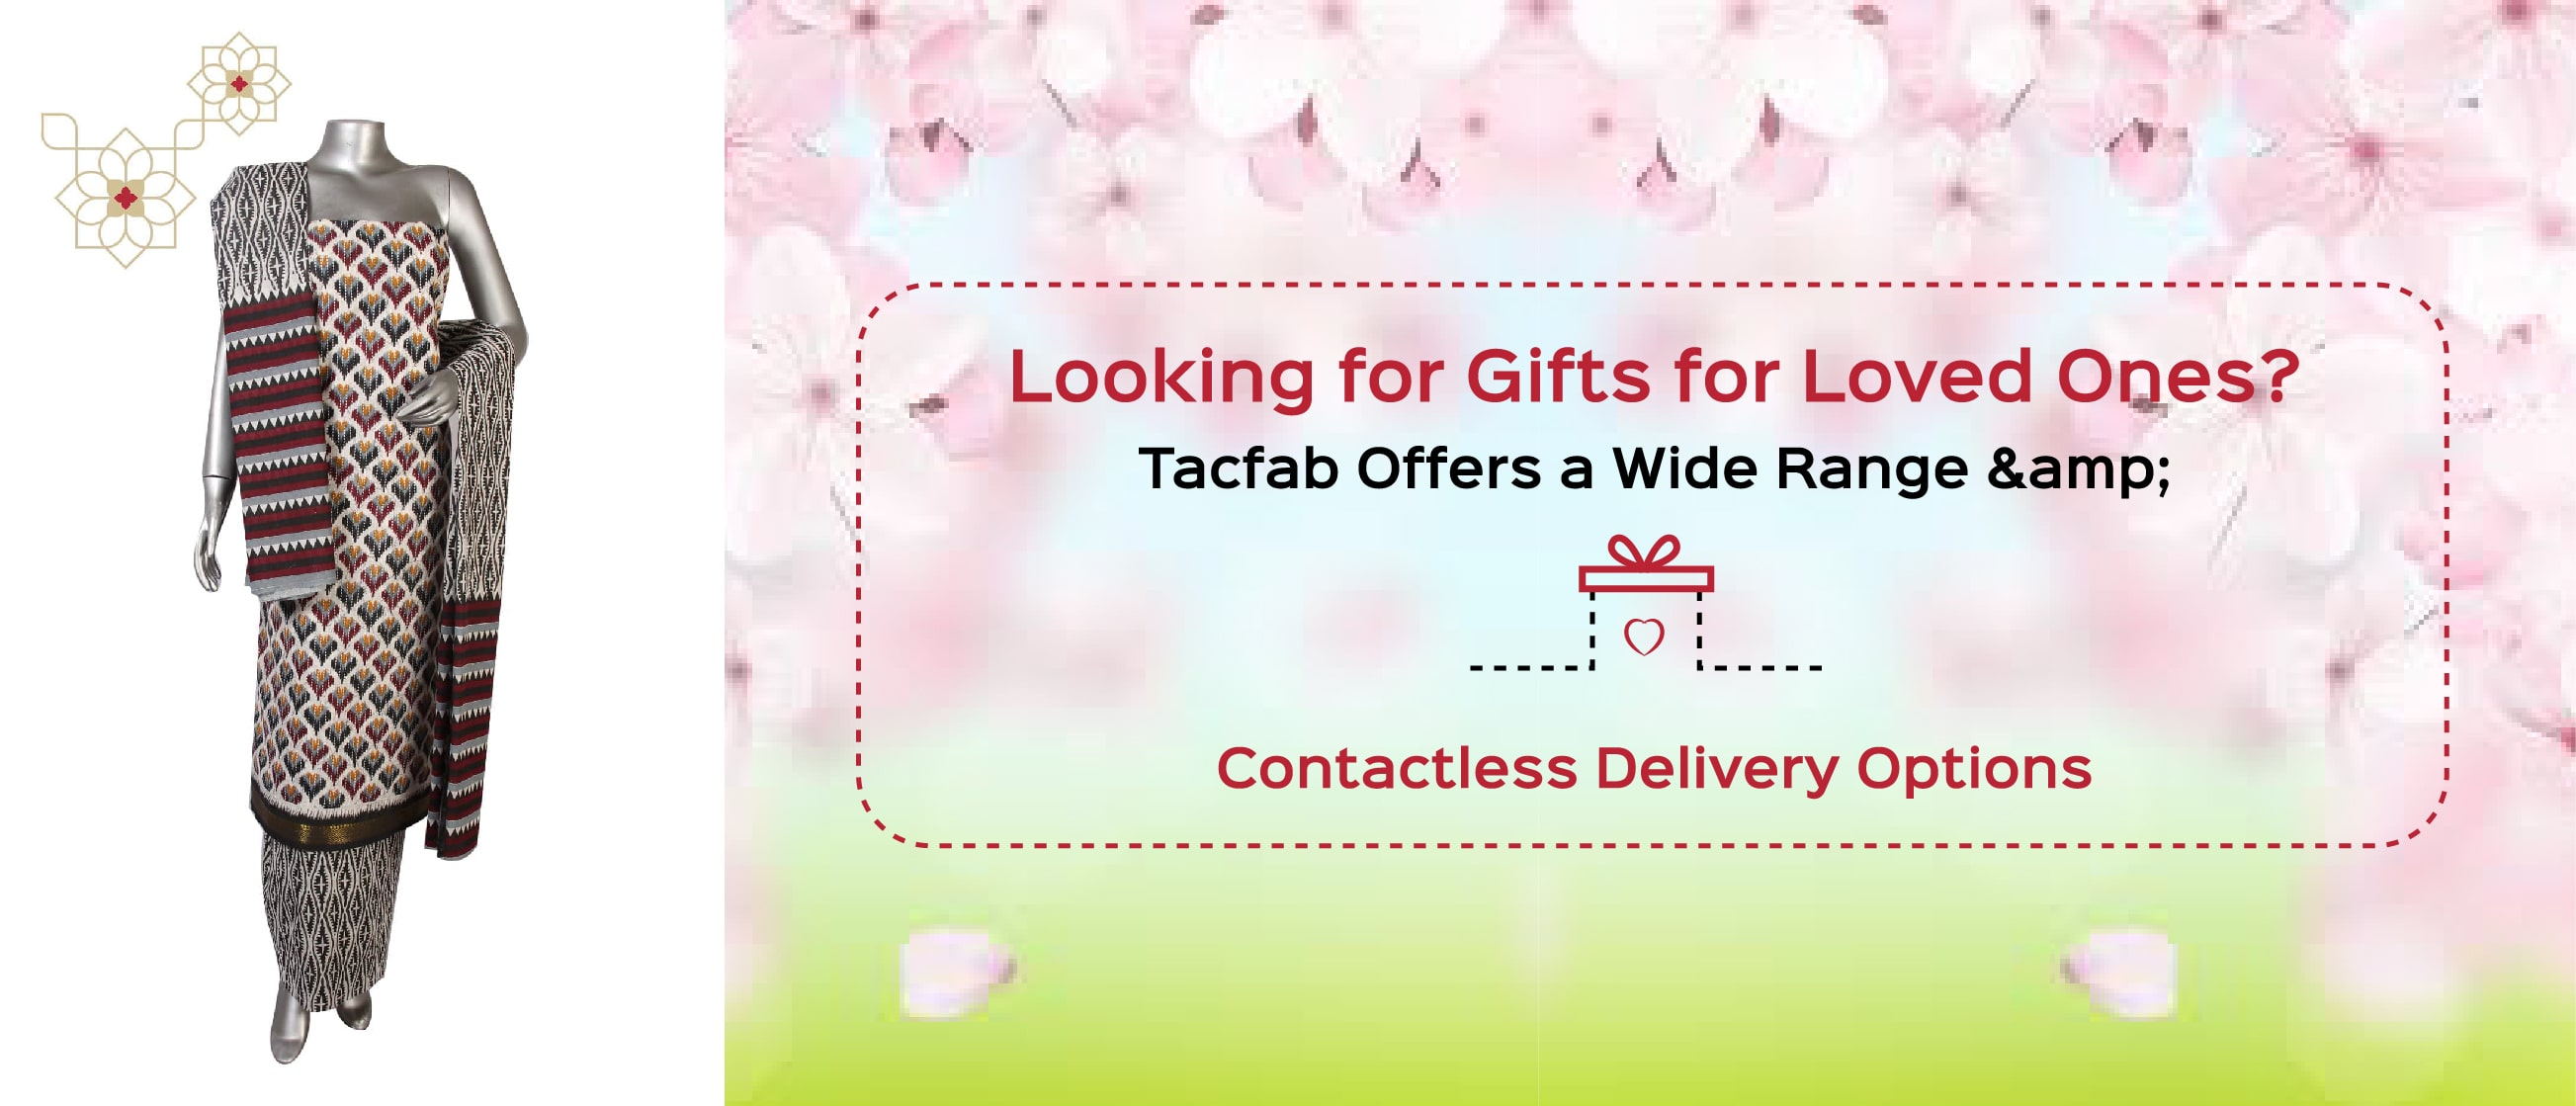 Looking for Gifts for Loved Ones? Tacfab Offers a Wide Range & Contactless Delivery Options